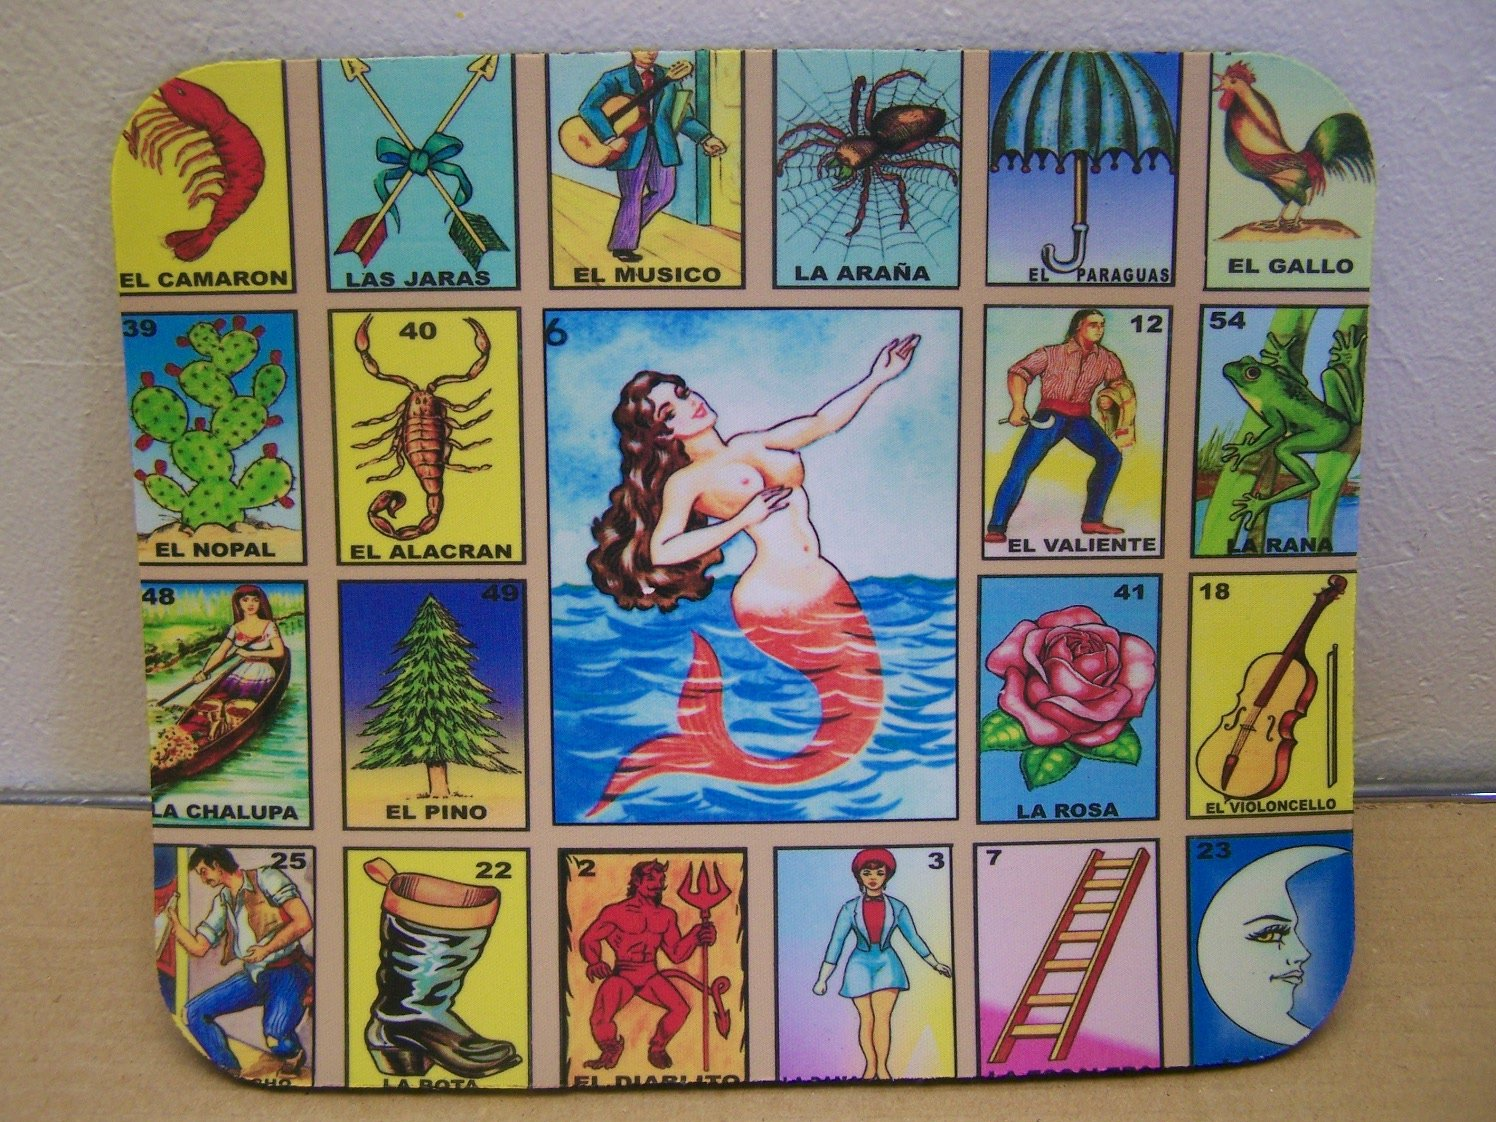 Amazon.com: Mexican Loteria Bingo Game Mousepad - La Sirena, Mermaid: Kitchen & Dining